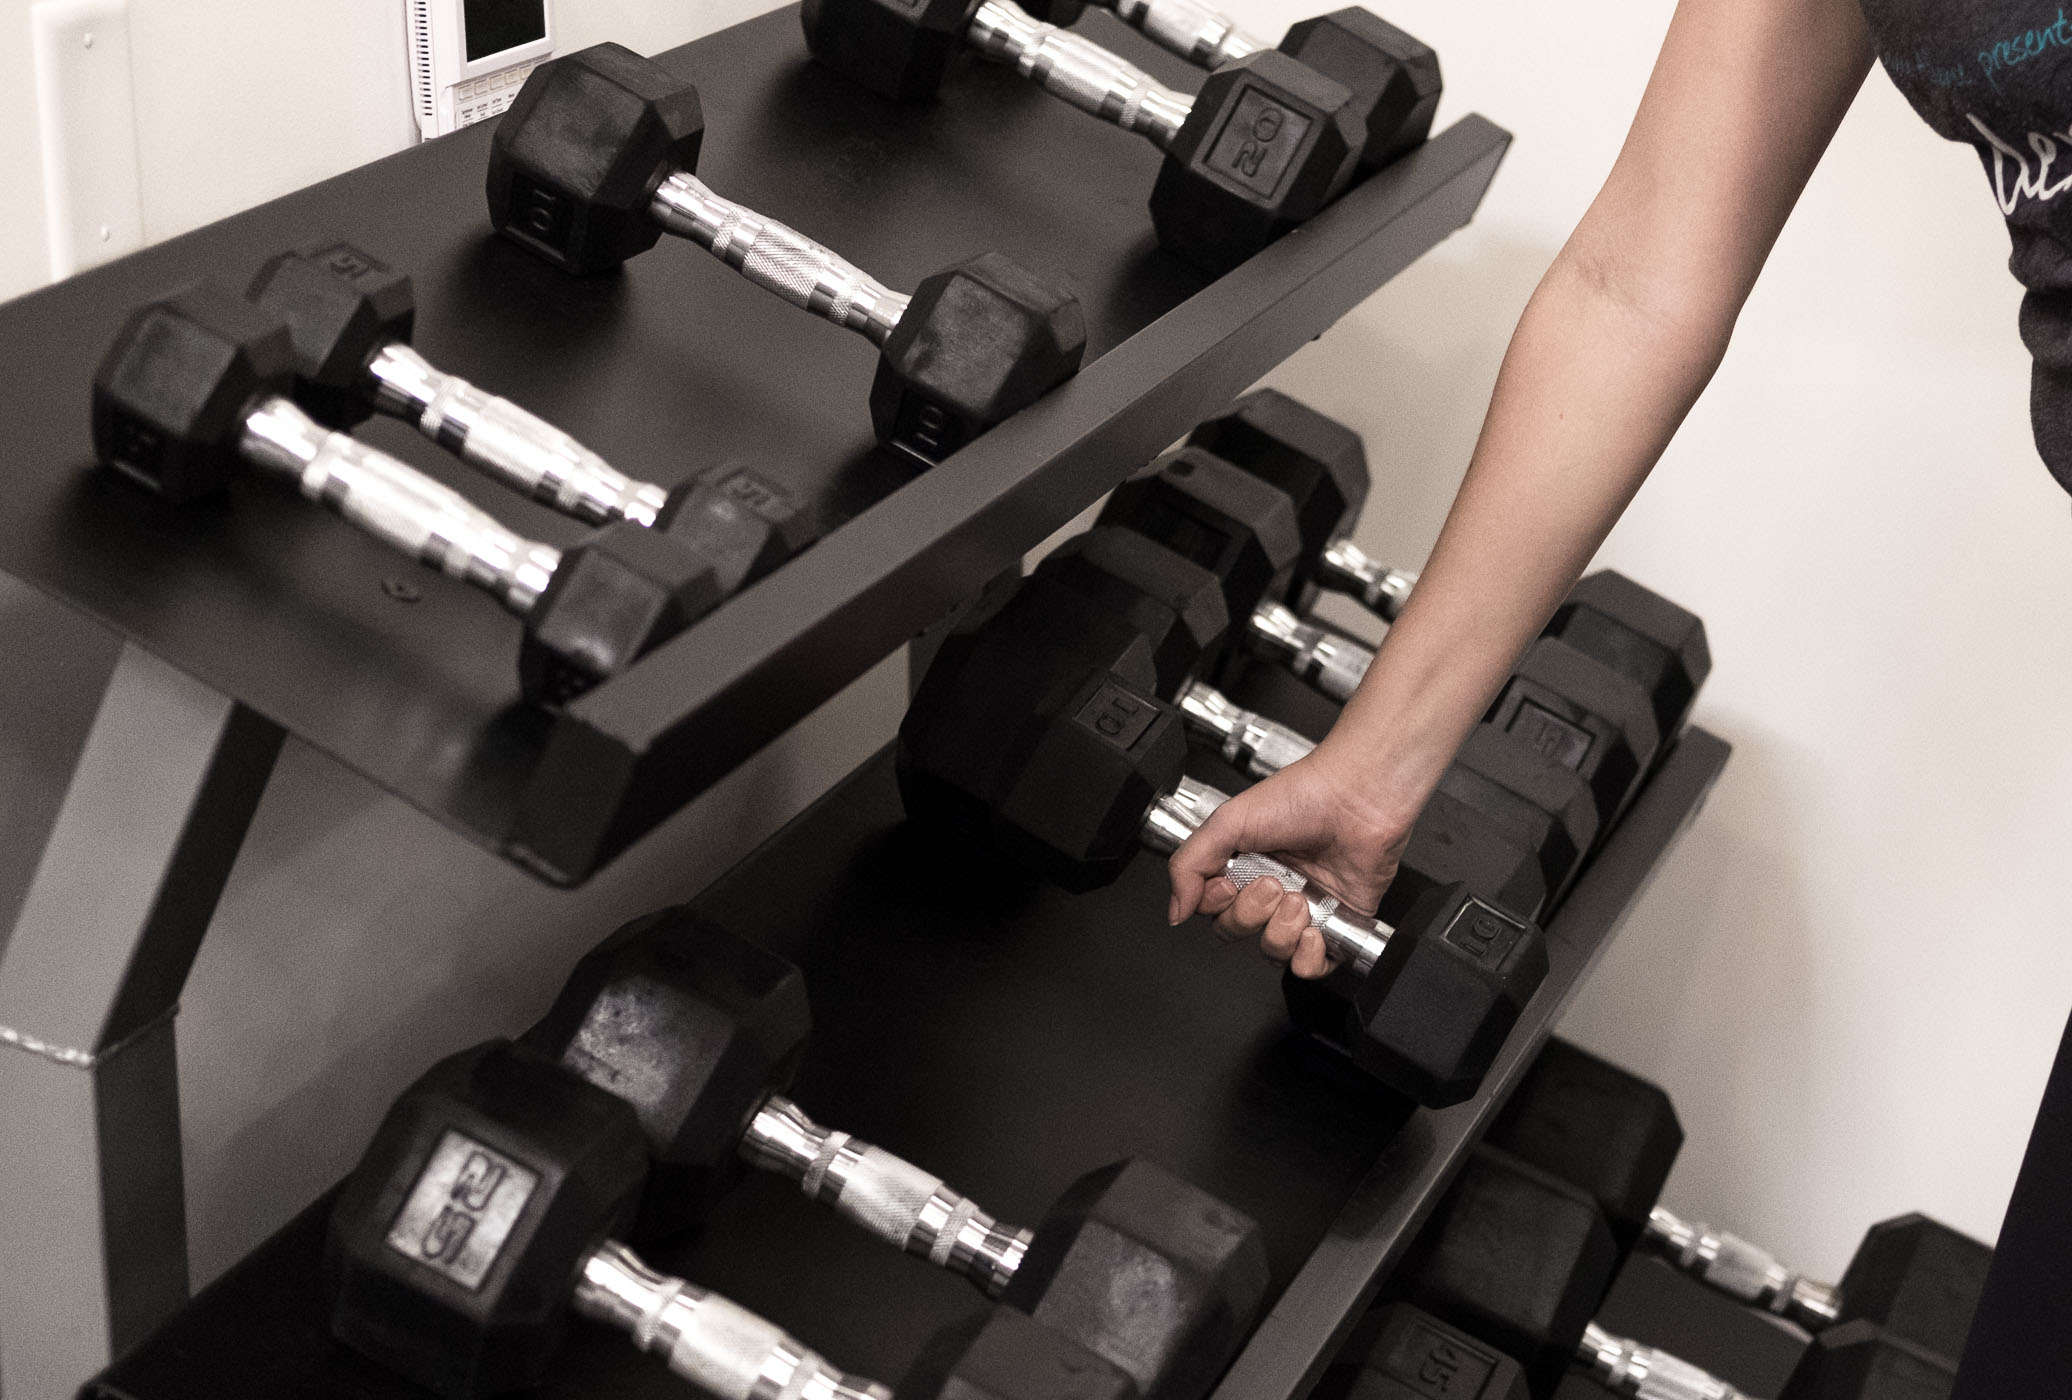 Rachel Off Duty: Lifting Weights at the Gym